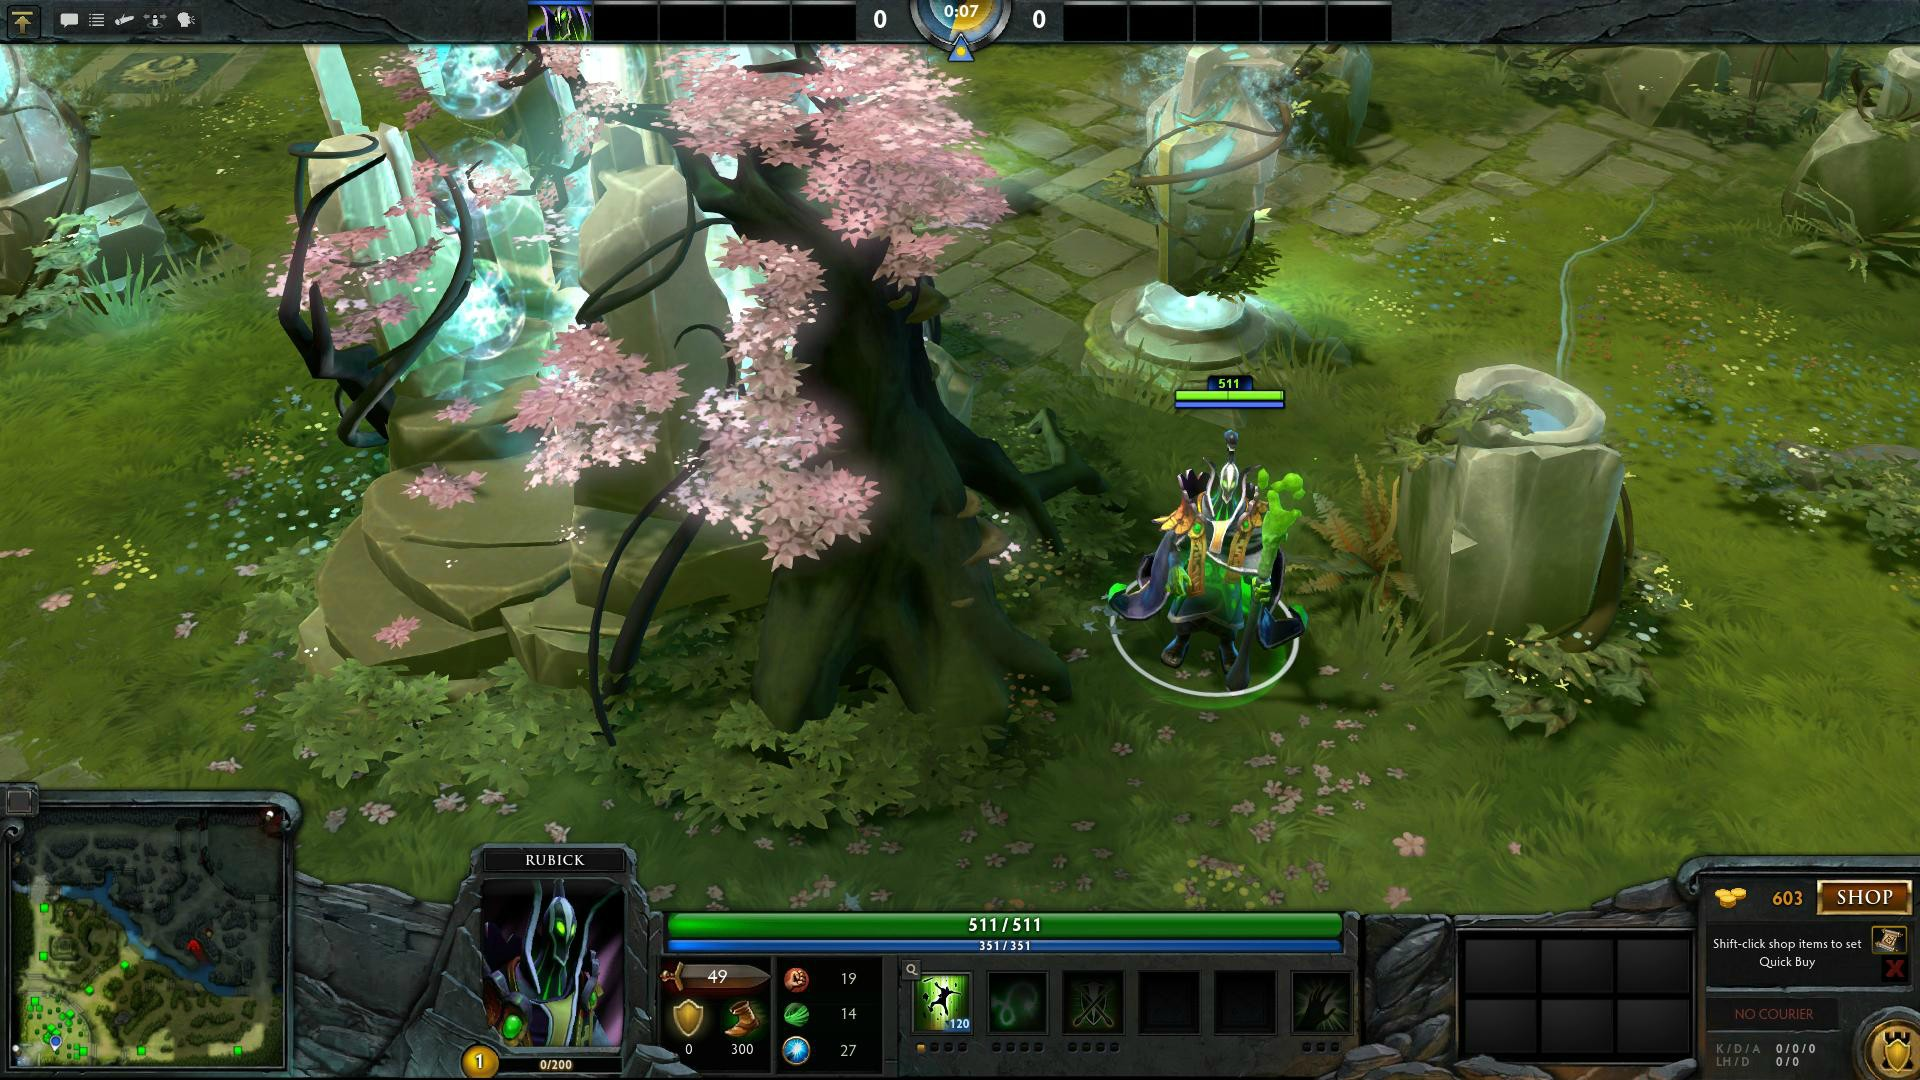 how to set dota2 to get high fps